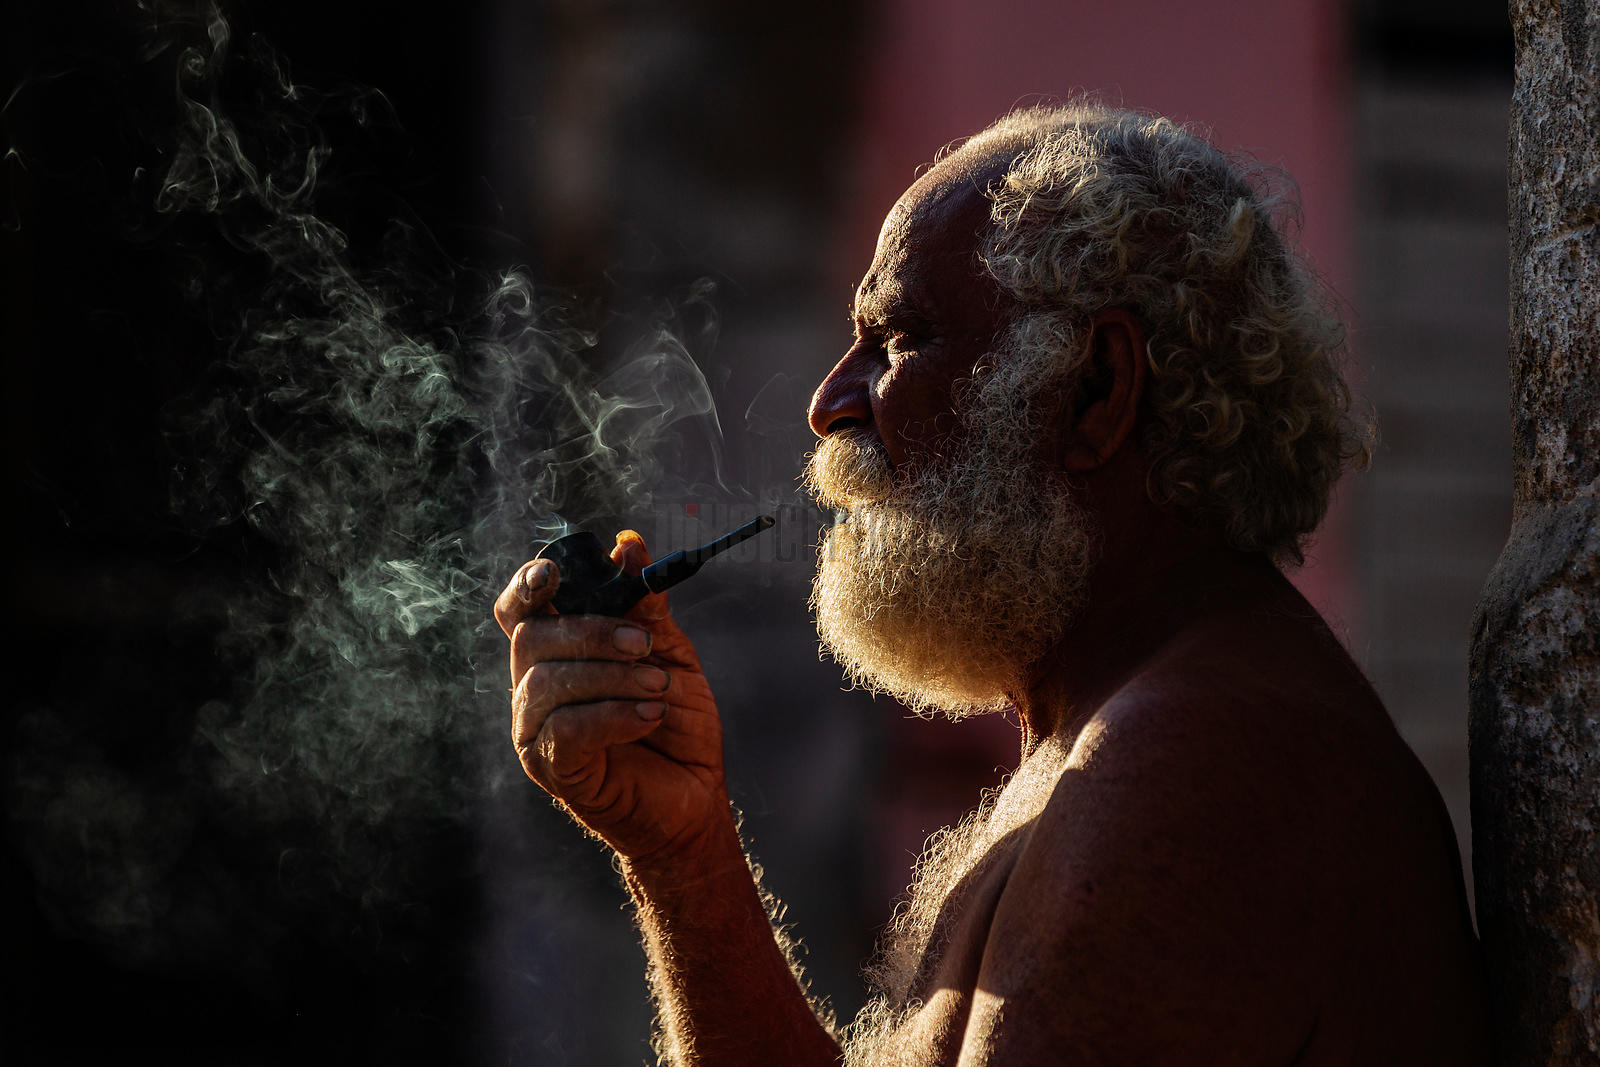 Bearded Man Smoking a Pipe at Dawn